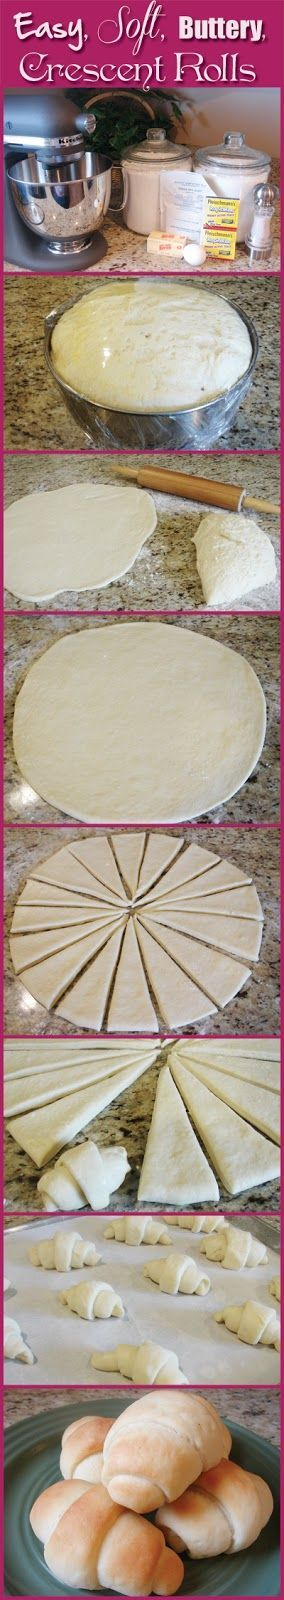 No more processed Pillsbury! Best Crescent Rolls Ever Recipe ~ absolute BEST…